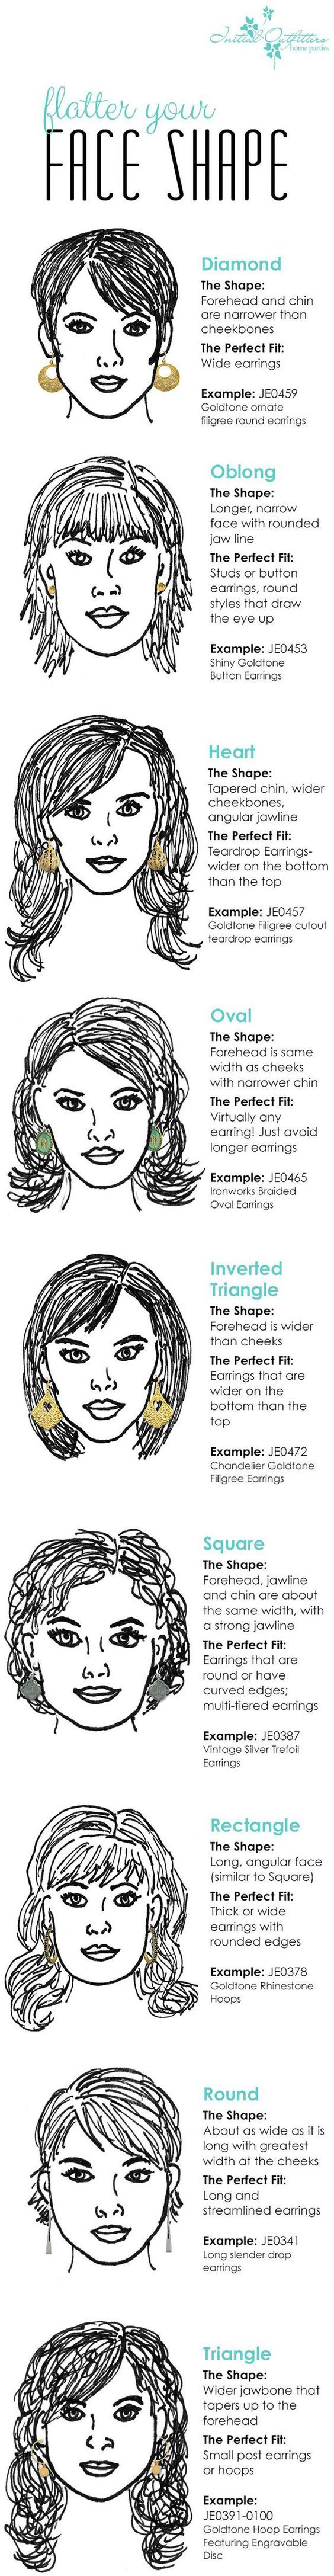 how to flatter your face shape